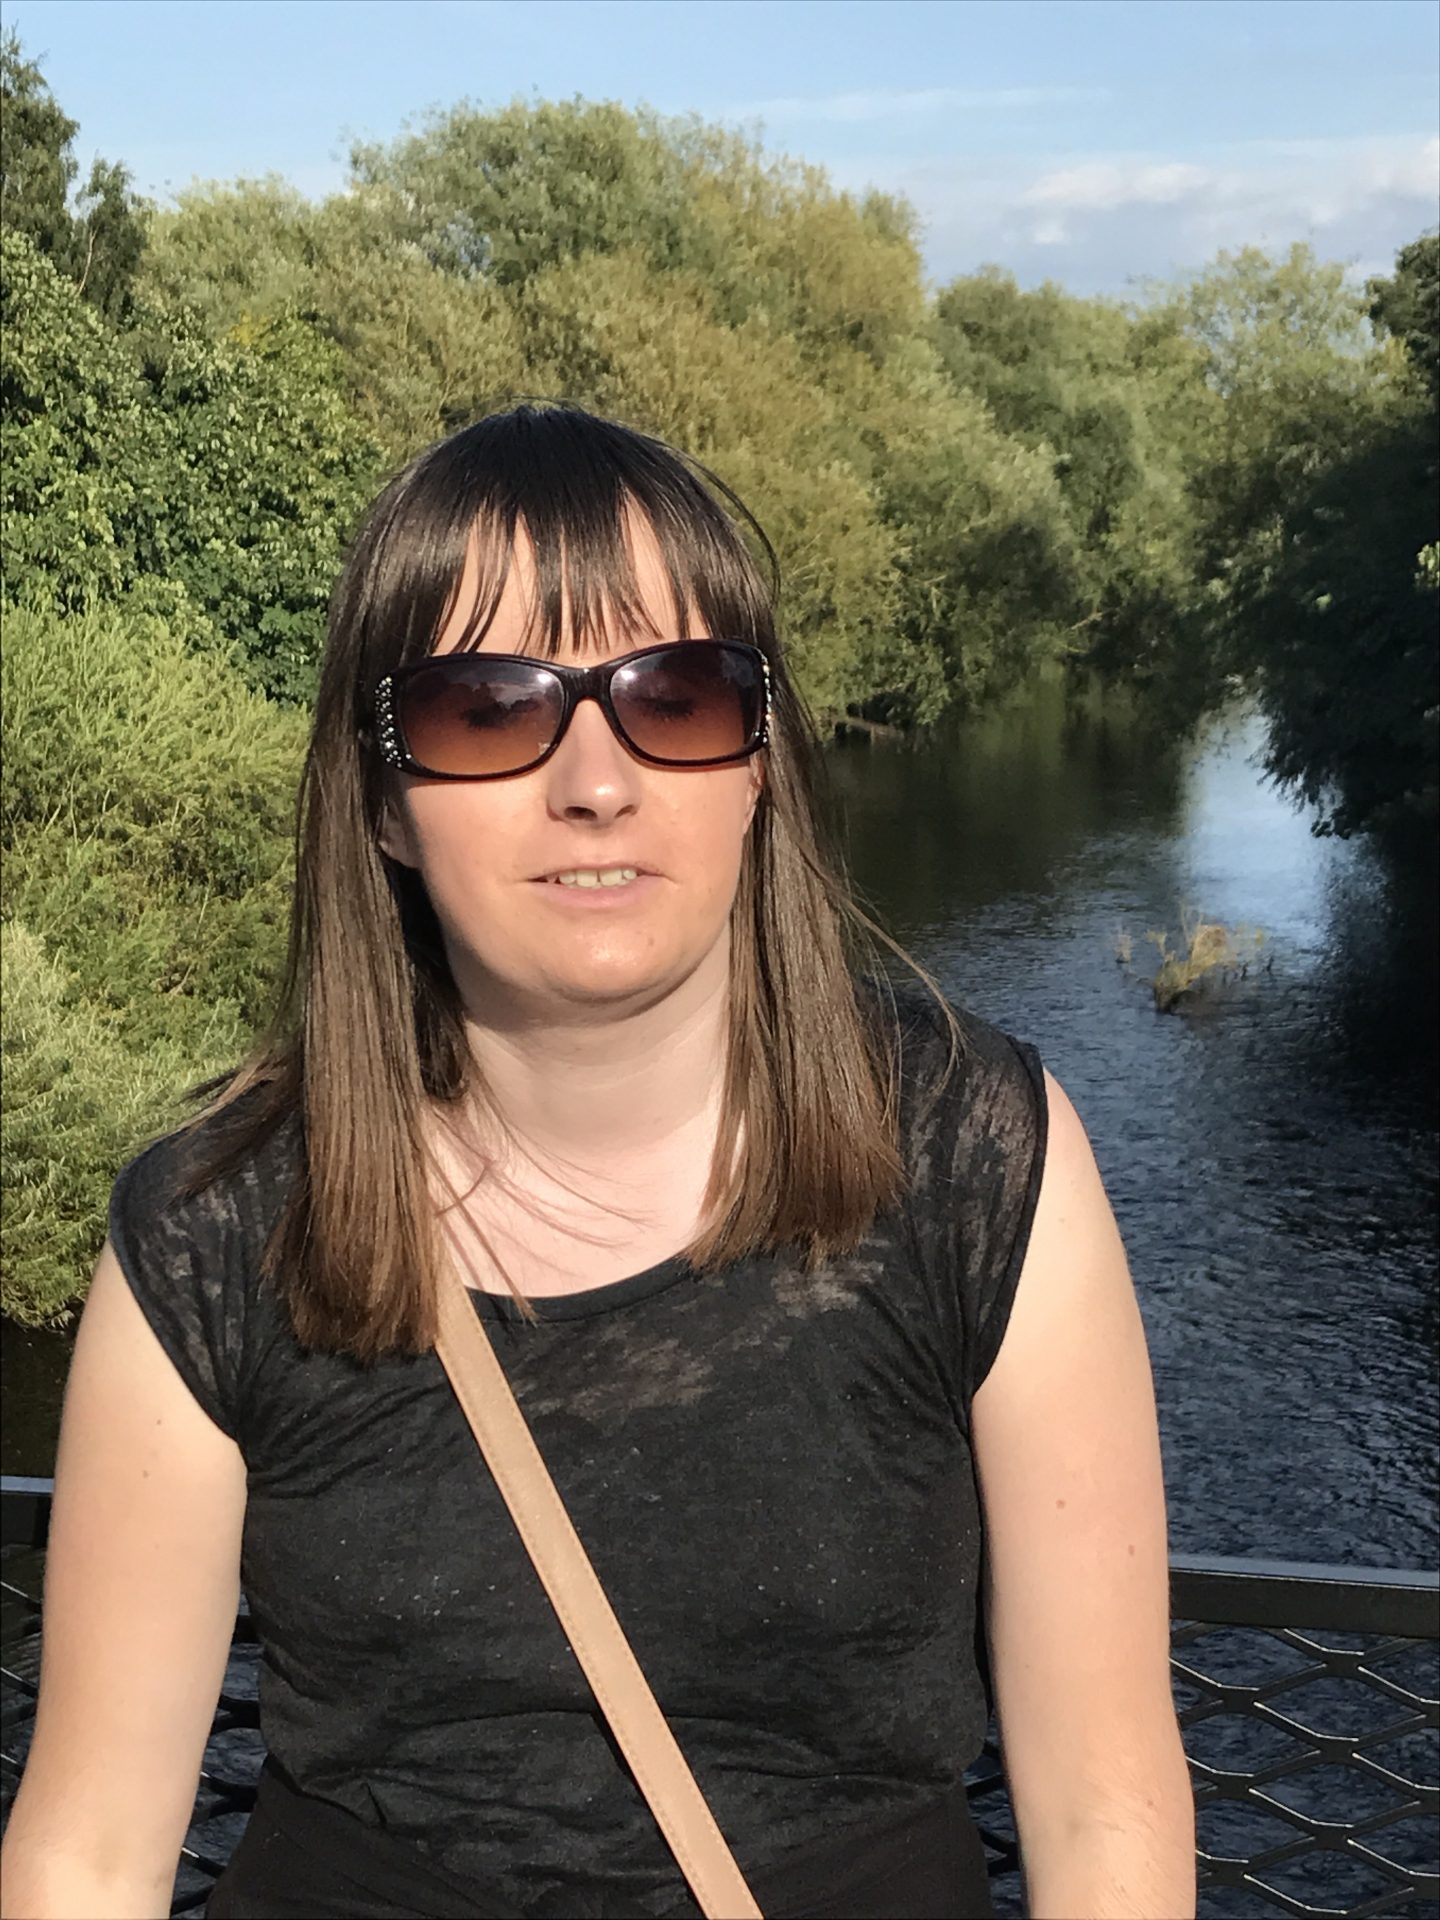 A photo of Holly wearing sunglasses